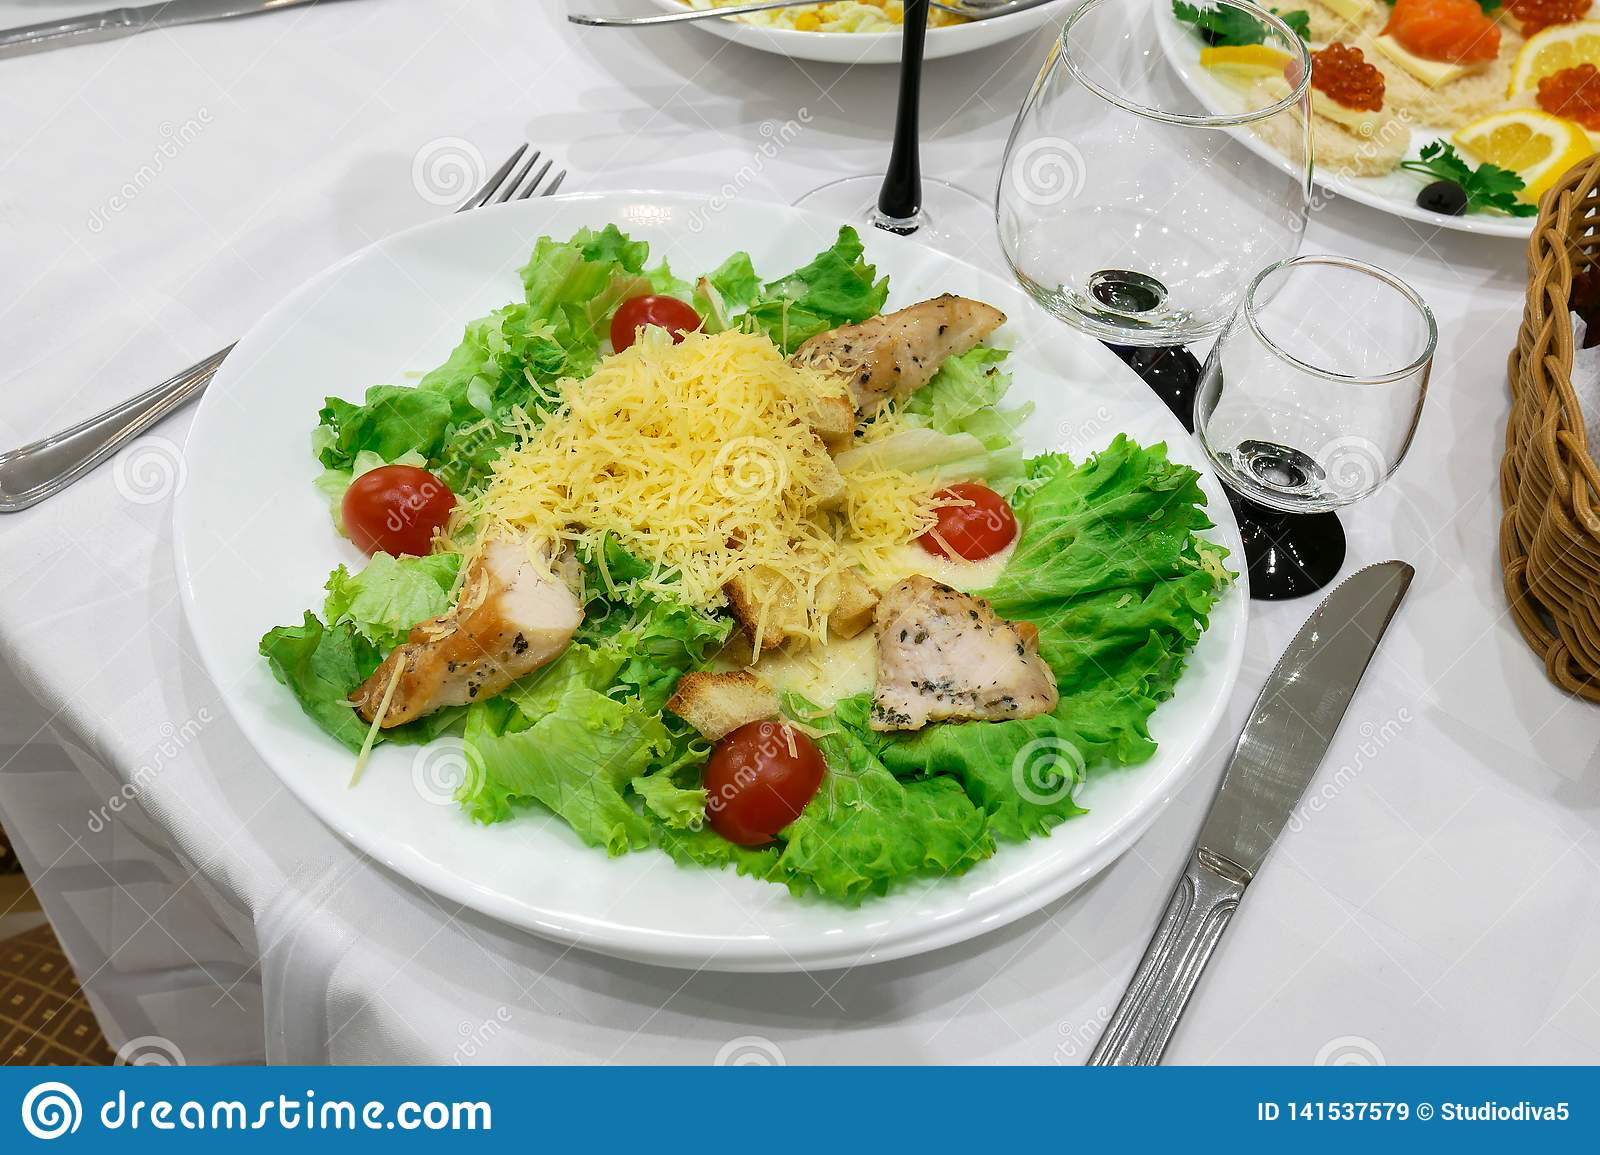 Dish in the restaurant. Green salt, potatoes and meat